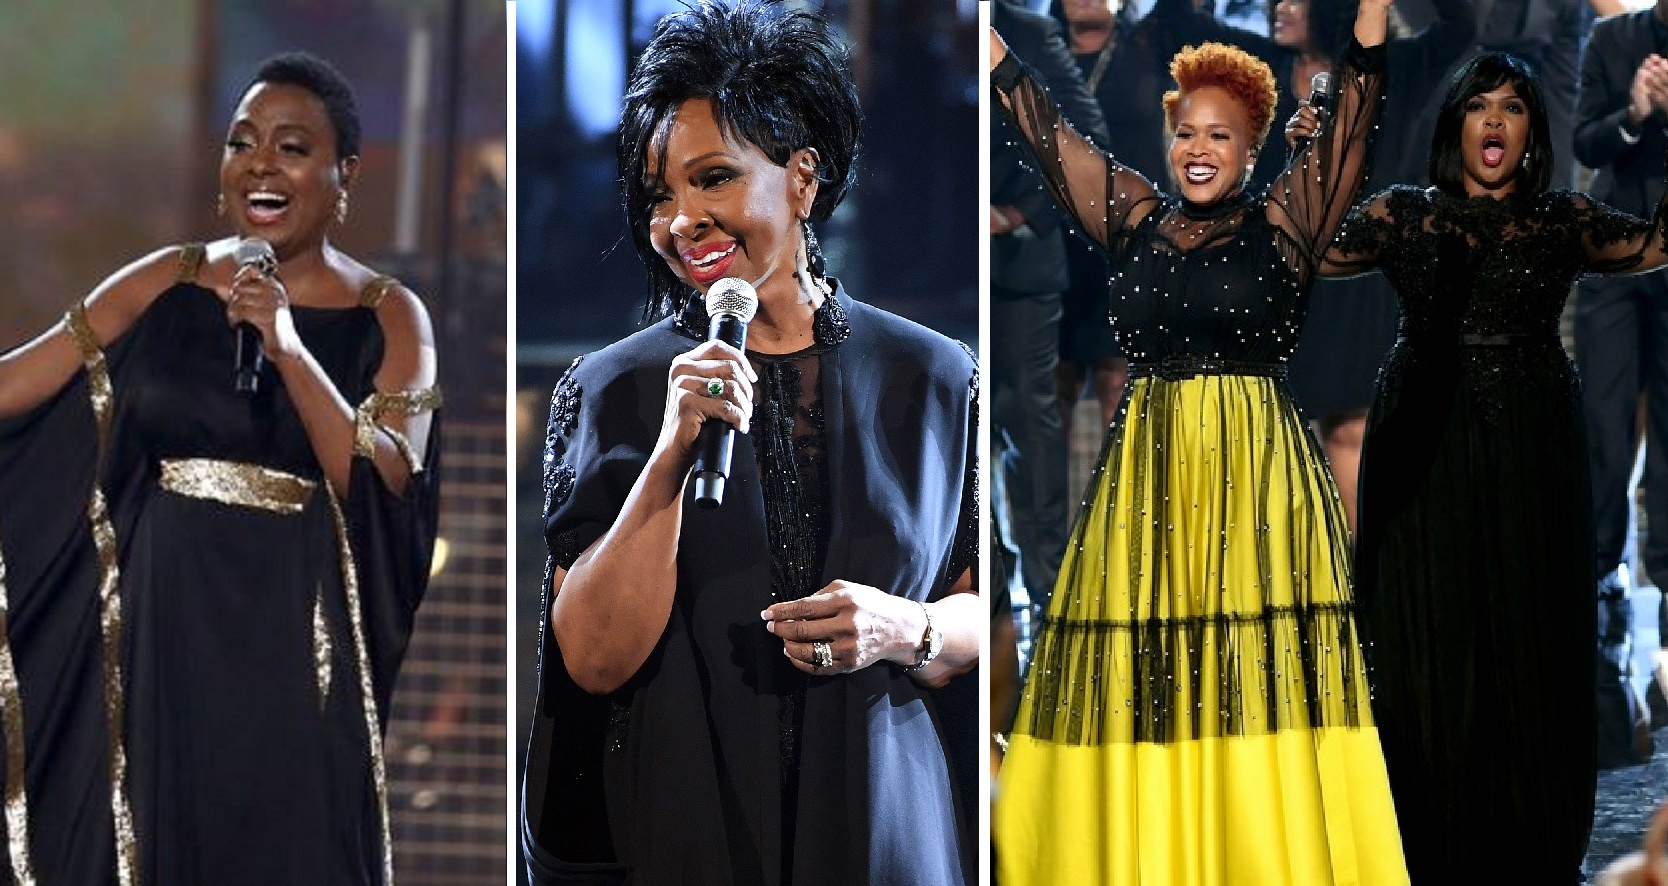 Aretha Franklin Receives Stellar Tribute At AMAs, Feat. Gladys Knight, Ledisi, CeCe Winans and More!